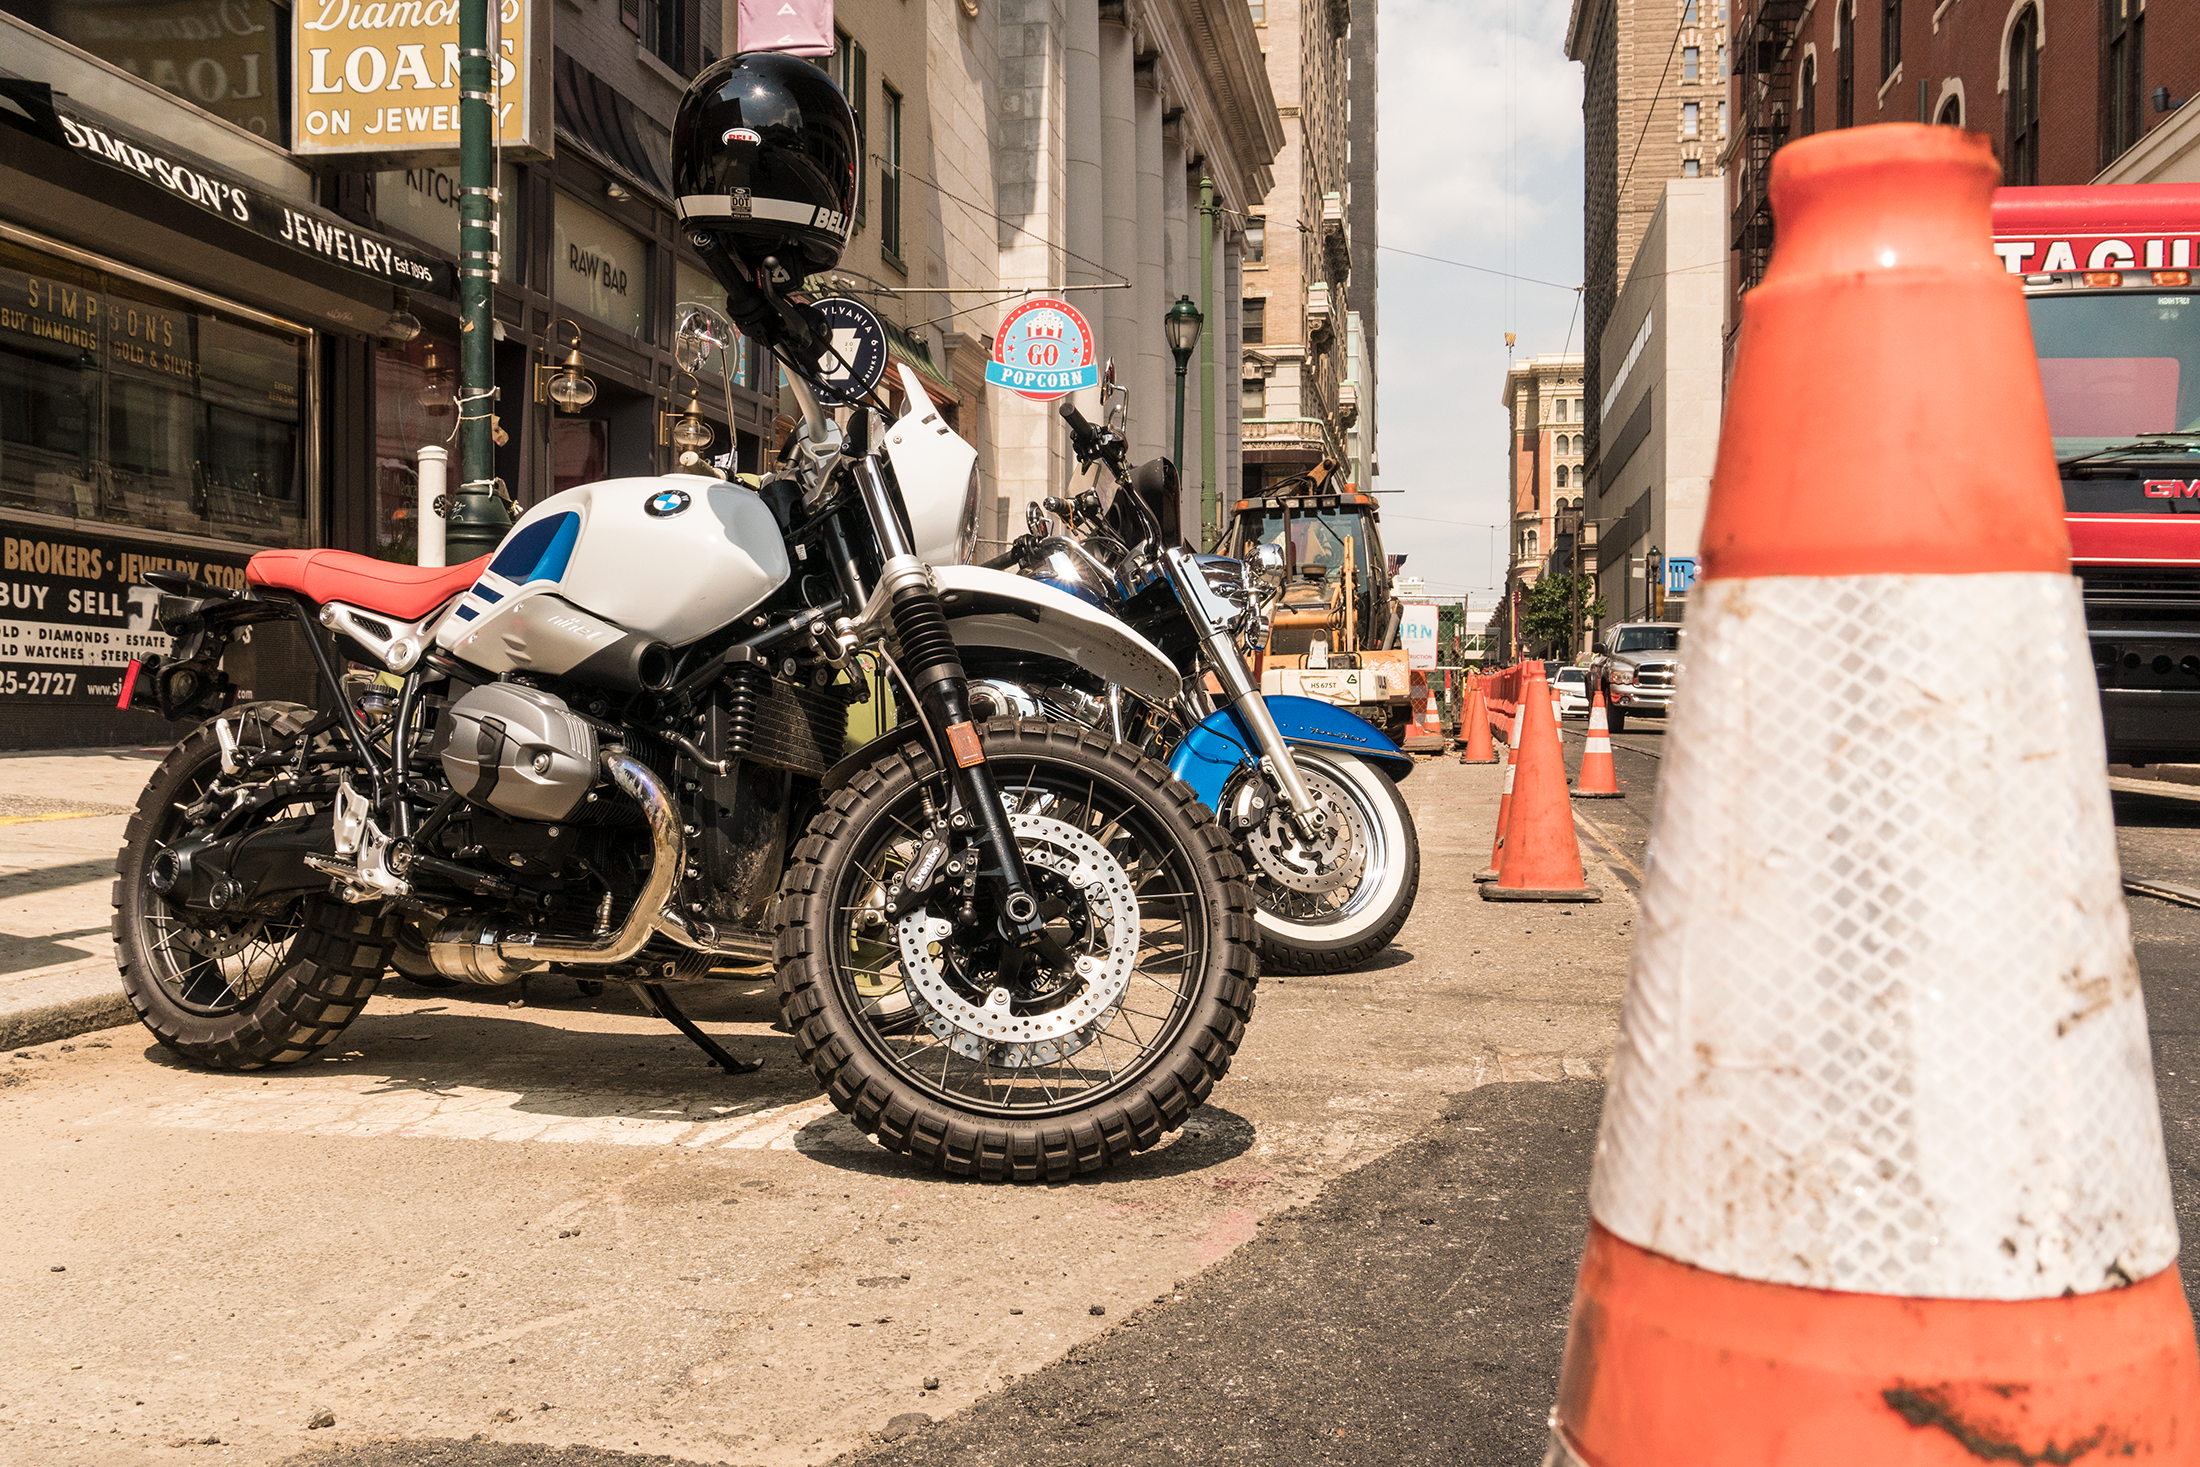 2018 BMW R nineT Urban GS first ride review - RevZilla